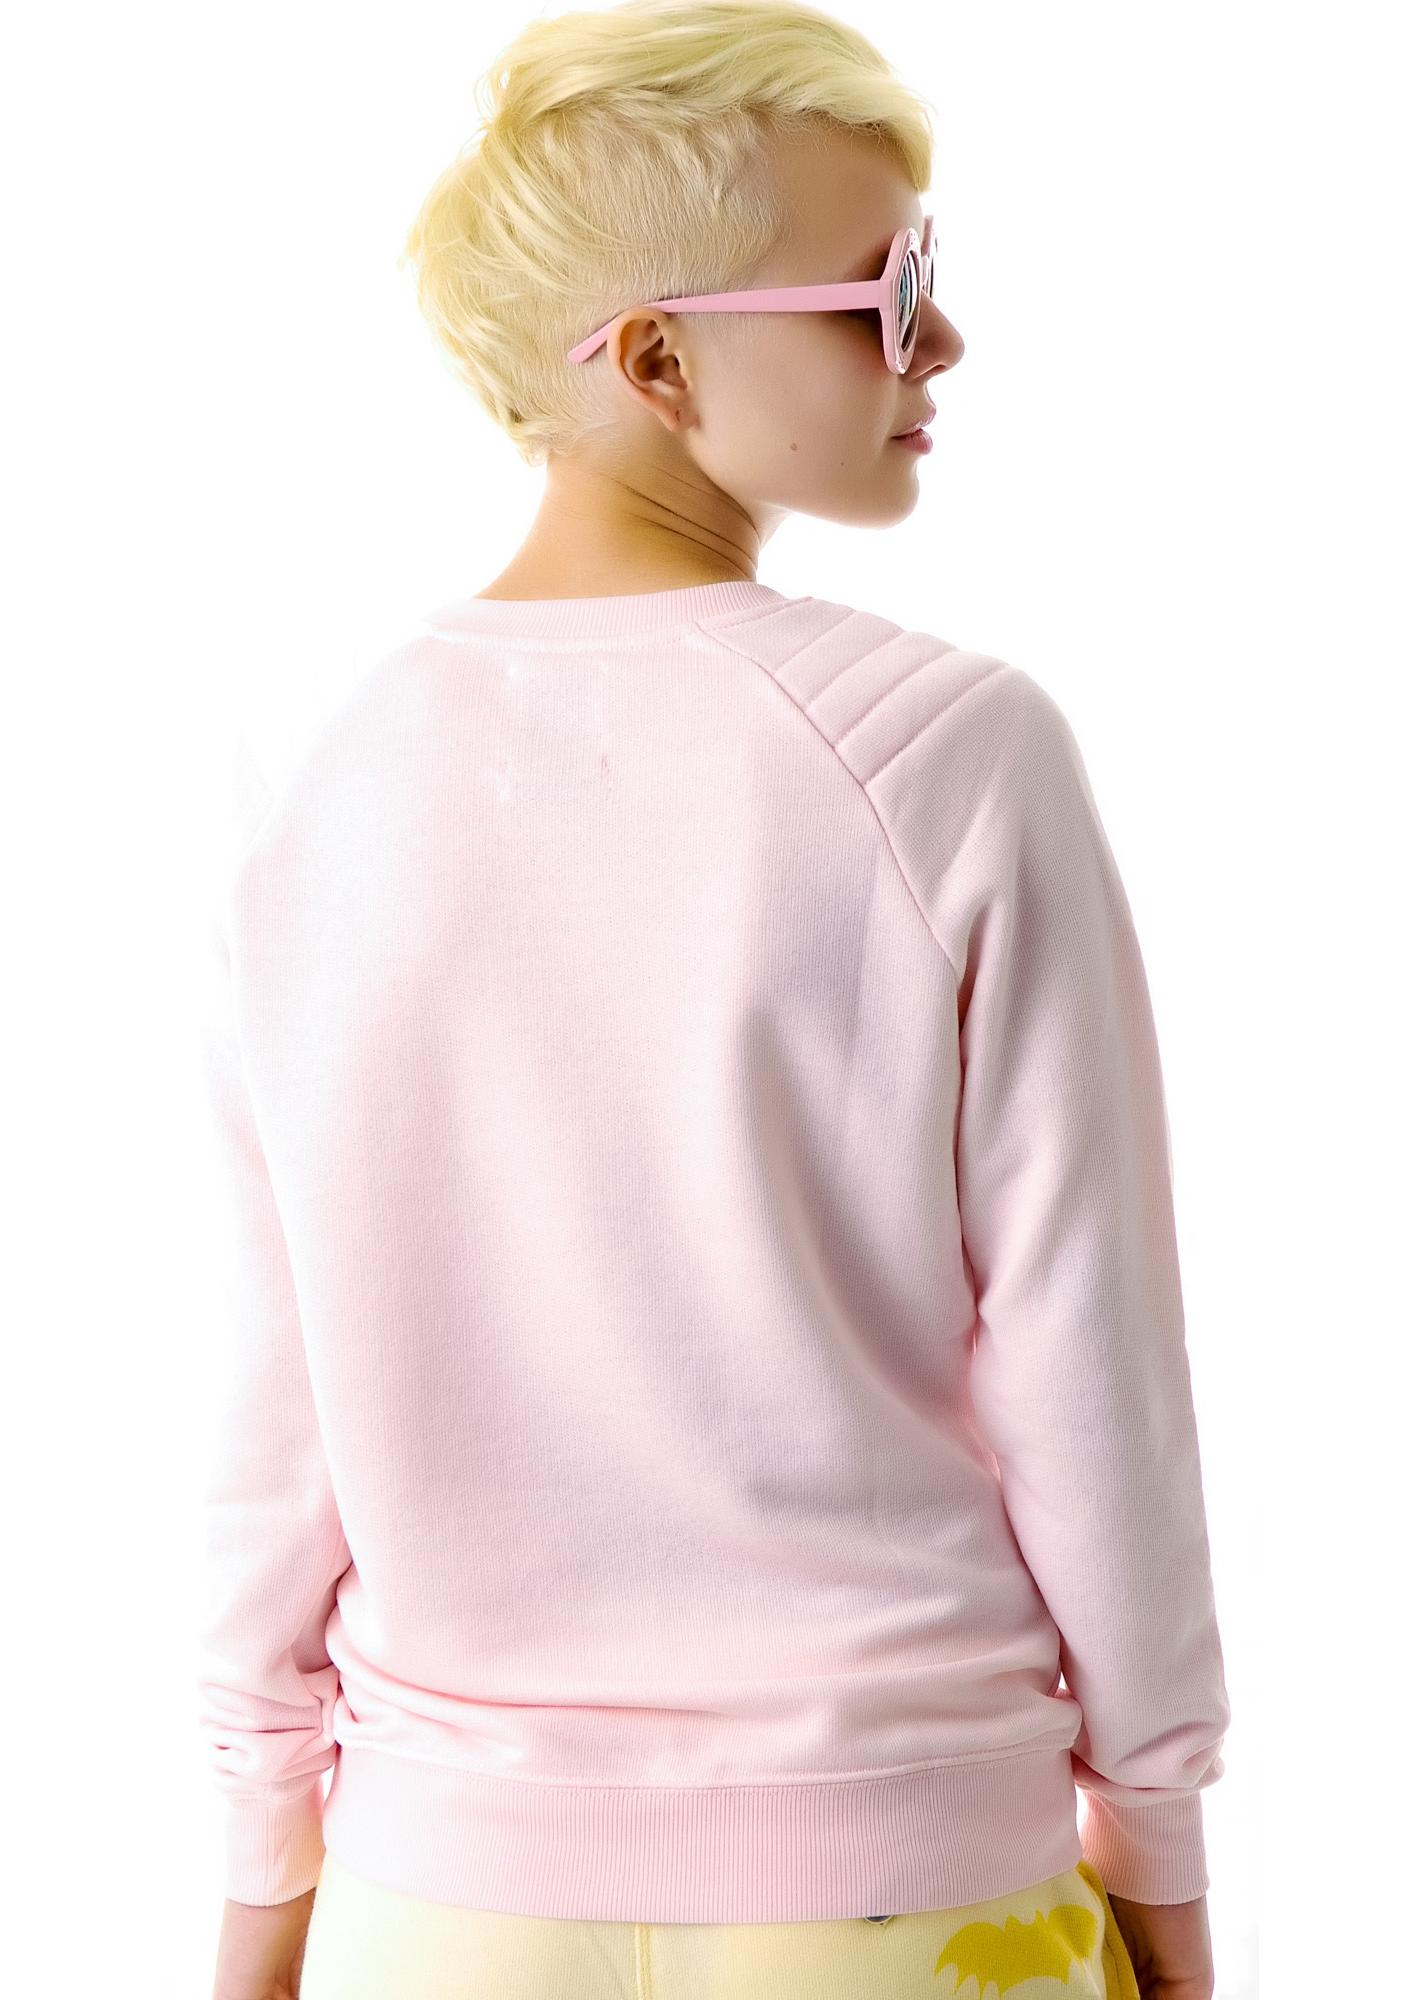 Zoe Karssen Trade Your Passion For Glory Sweater